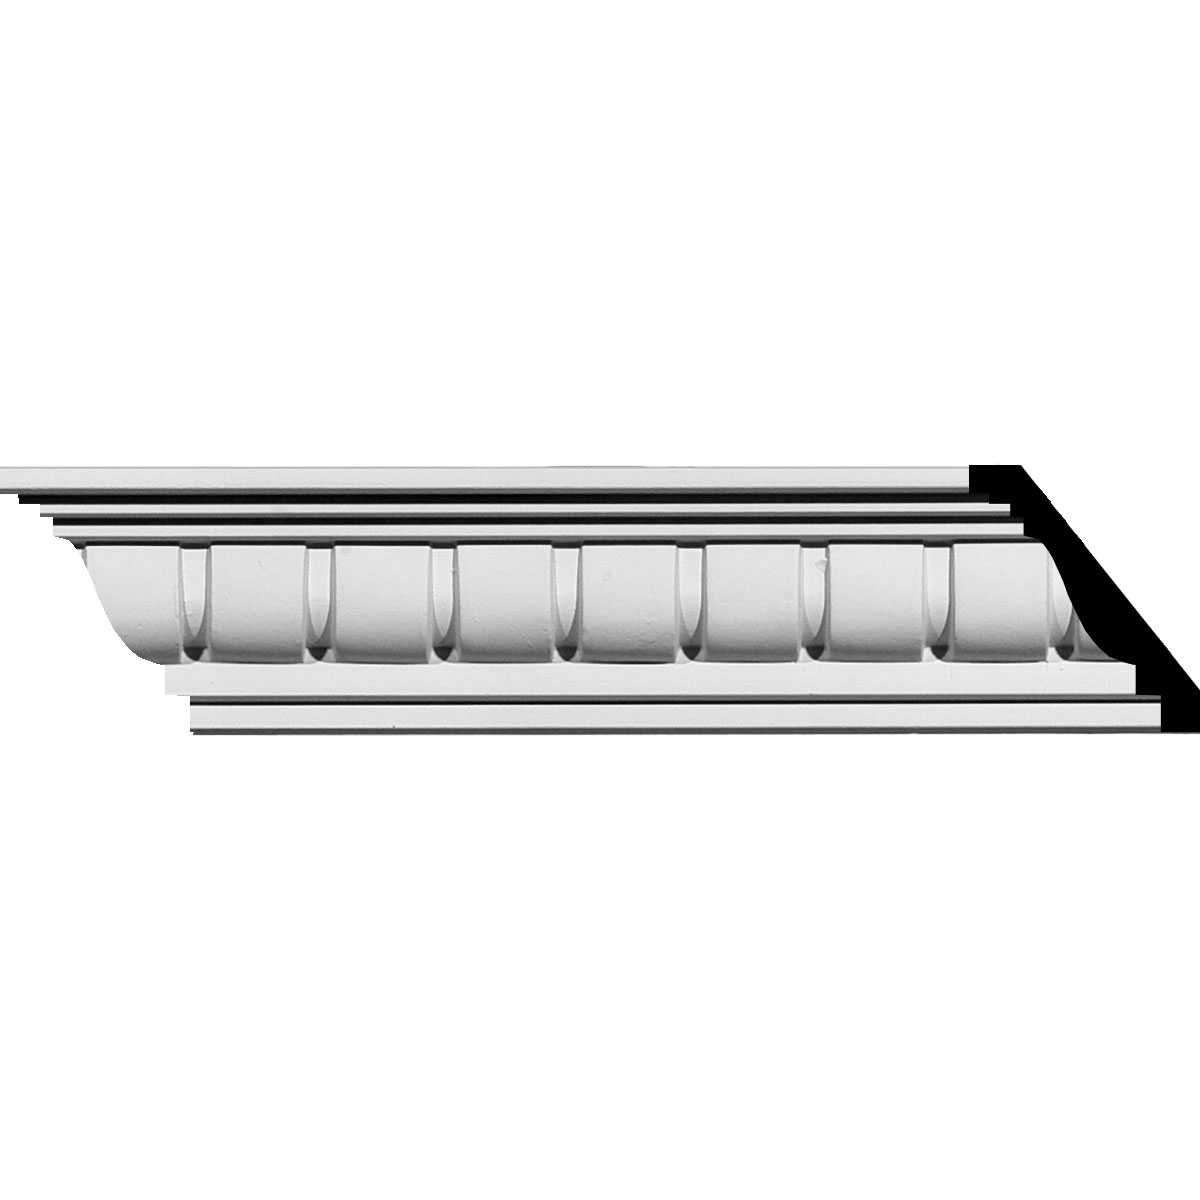 Ekena Millwork Sequential 2 5/8''H x 94 5/8''W x 2 3/4''D Crown Moulding